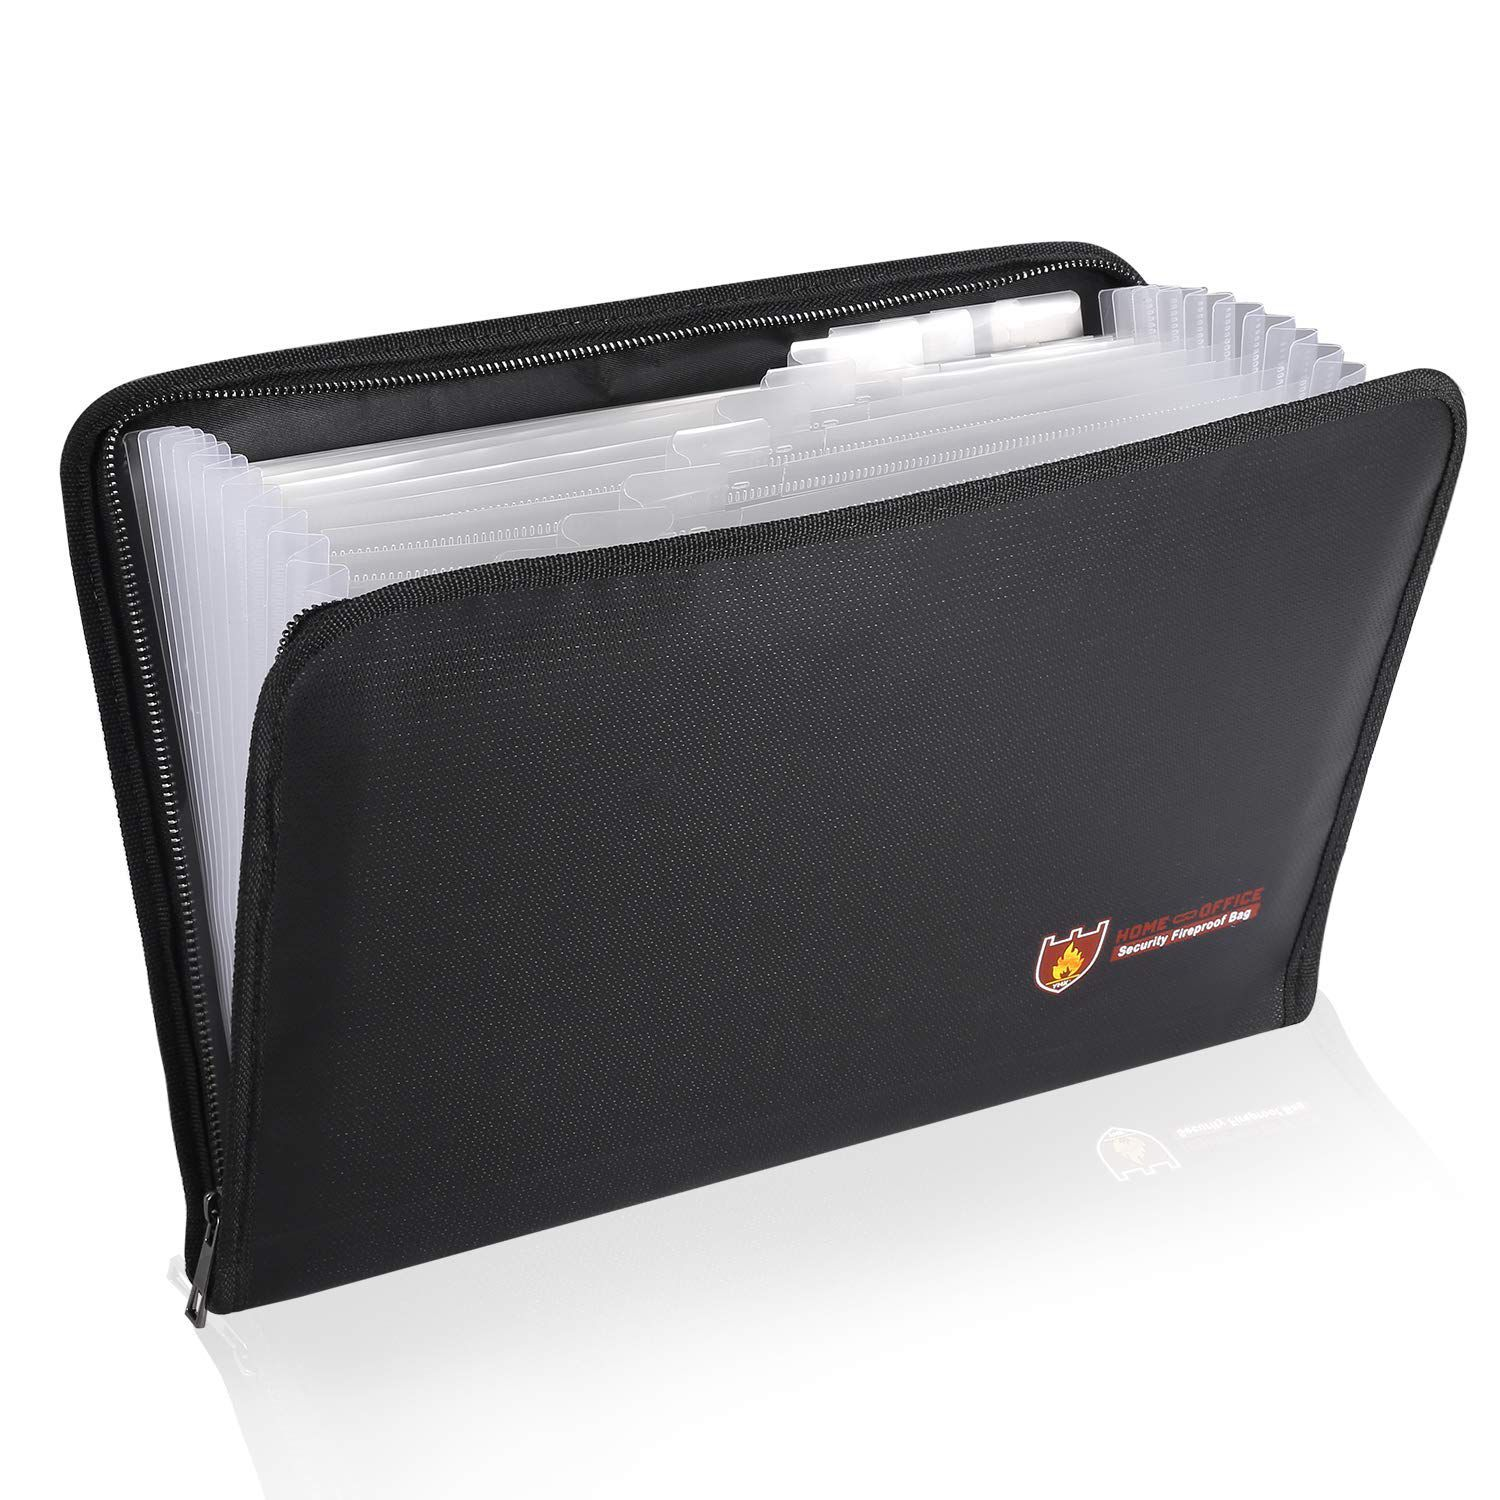 Fireproof Files Folder Accordion Document Bags 14.3x9.8 inch A4 Size 12 Pockets Non-Itchy Silicone Coated Fire Resistant Safe Fireproof Files Folder Accordion Document Bags 14.3x9.8 inch A4 Size 12 Pockets Non-Itchy Silicone Coated Fire Resistant Safe